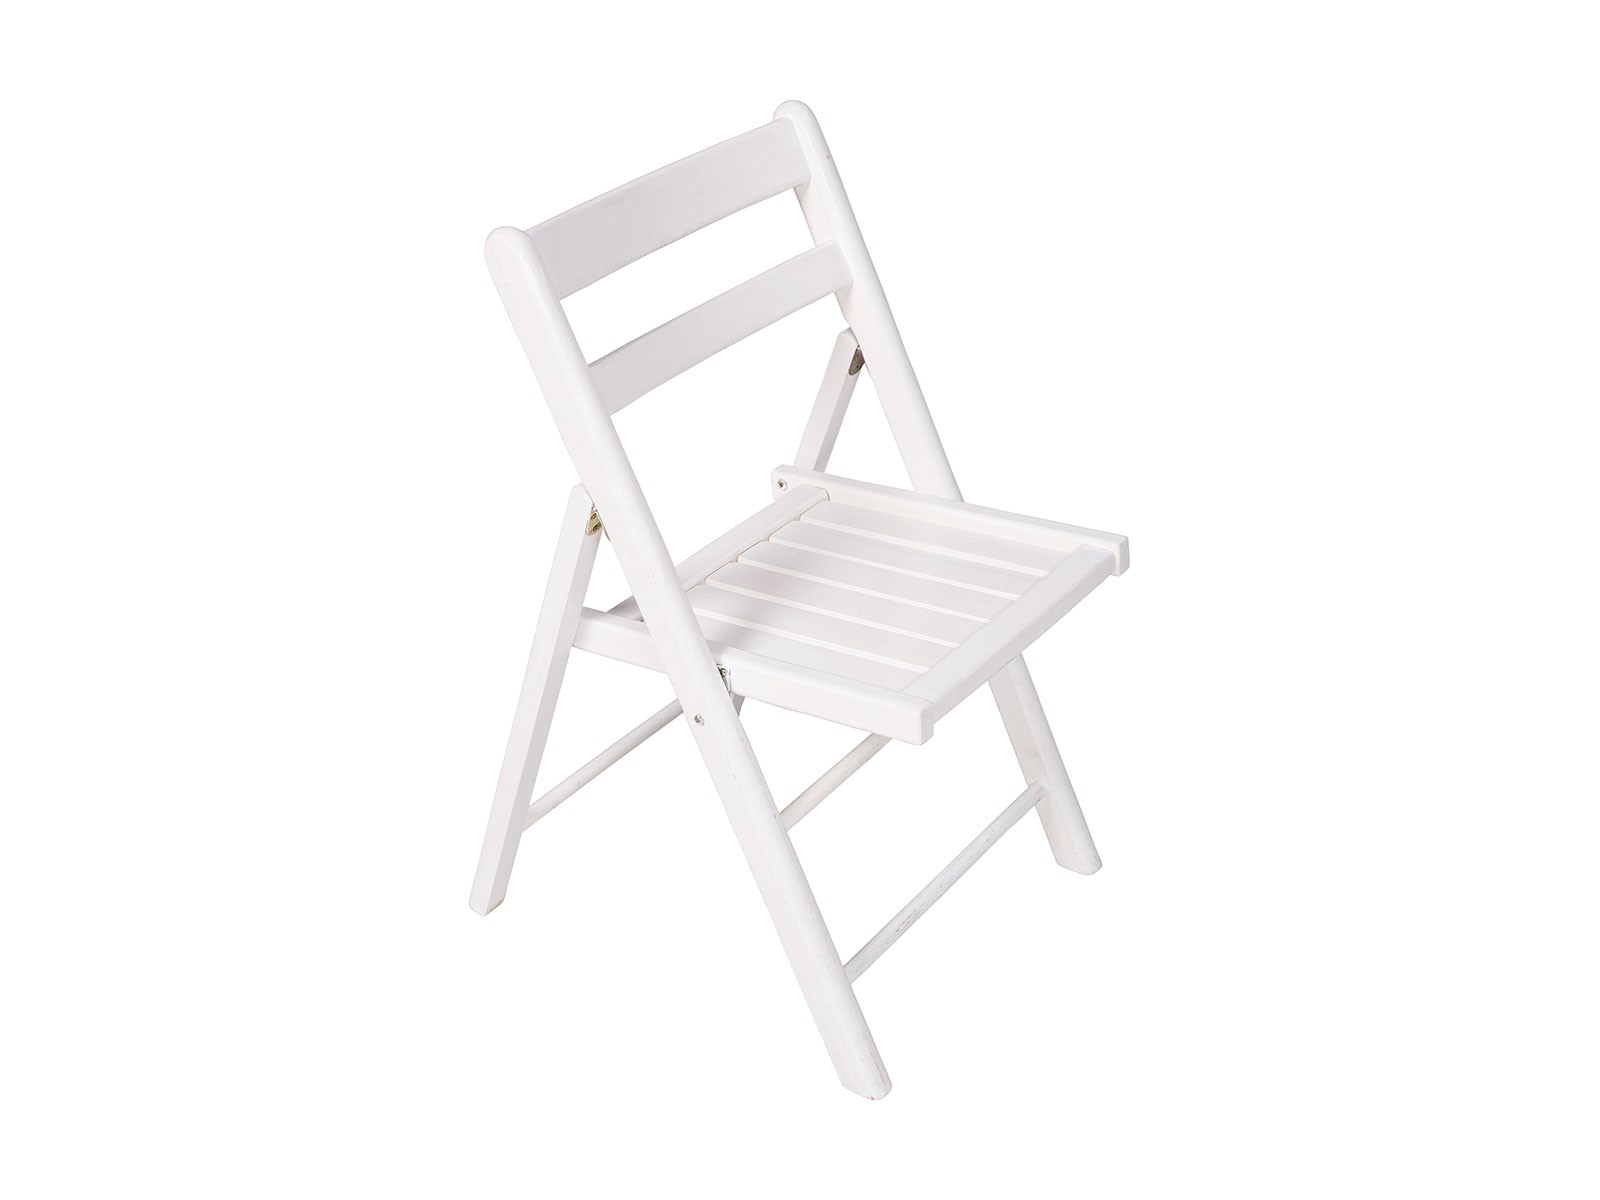 Folding Chair Drawing At Getdrawings Com Free For